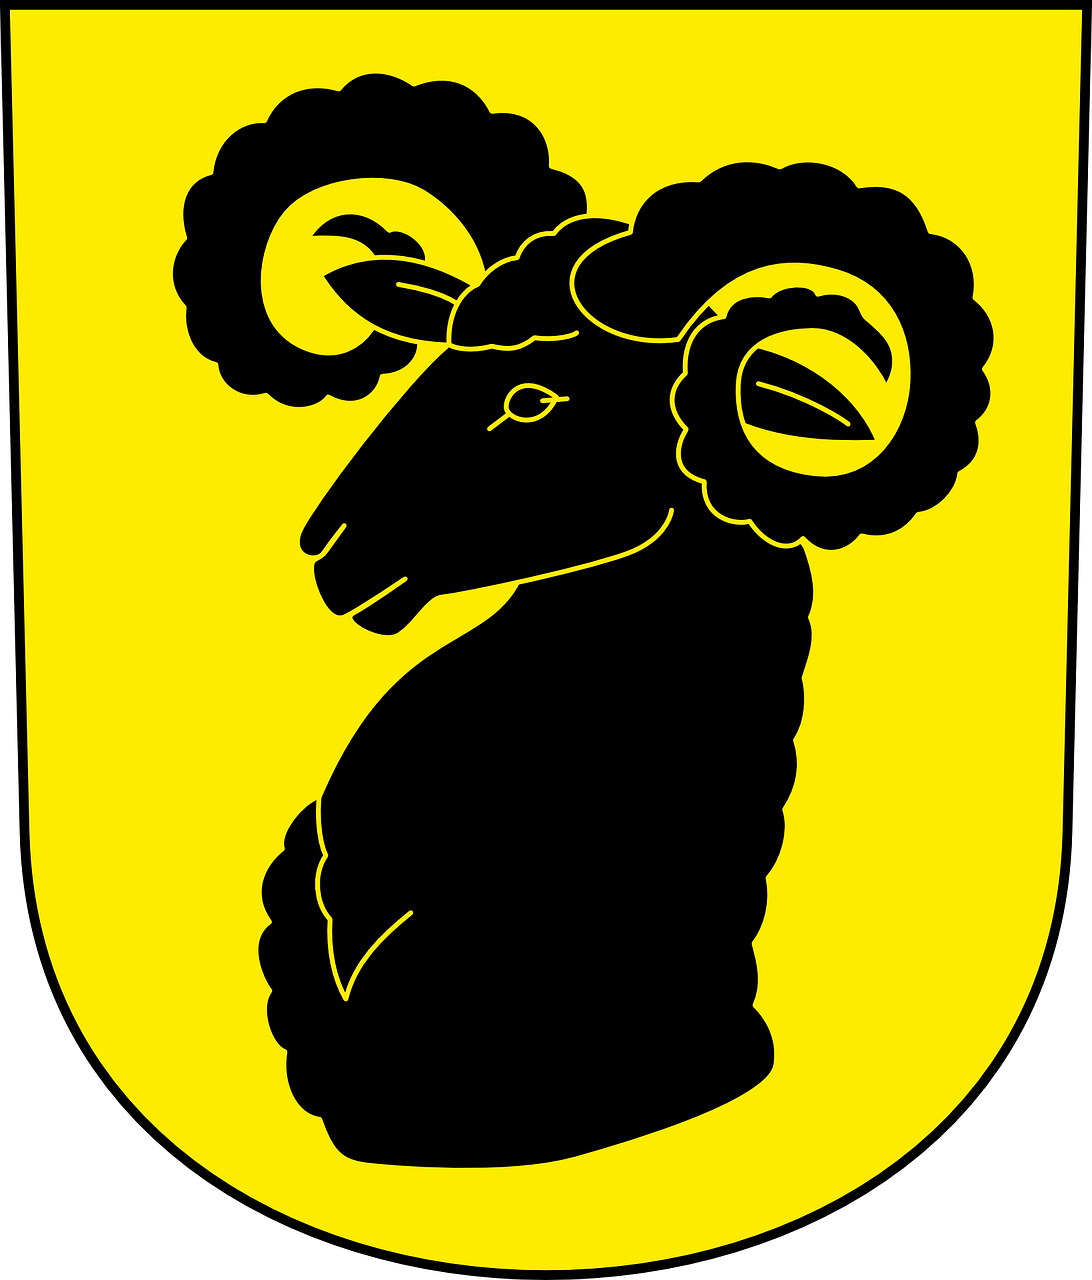 ram goat coat of arms free photo